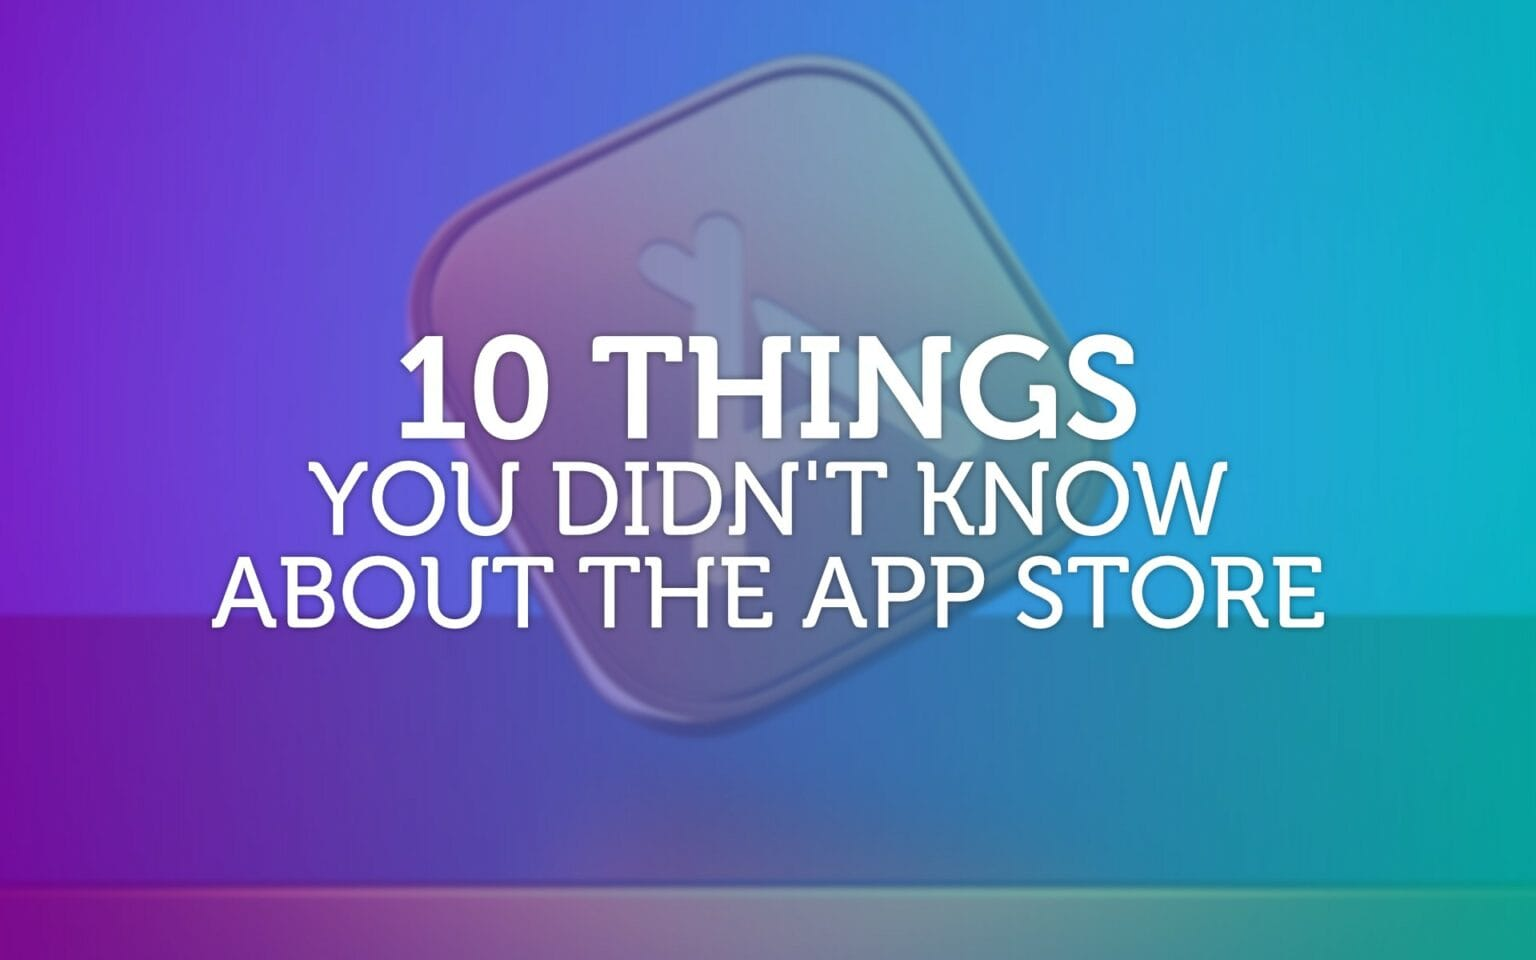 10 things you didn't know about the App Store